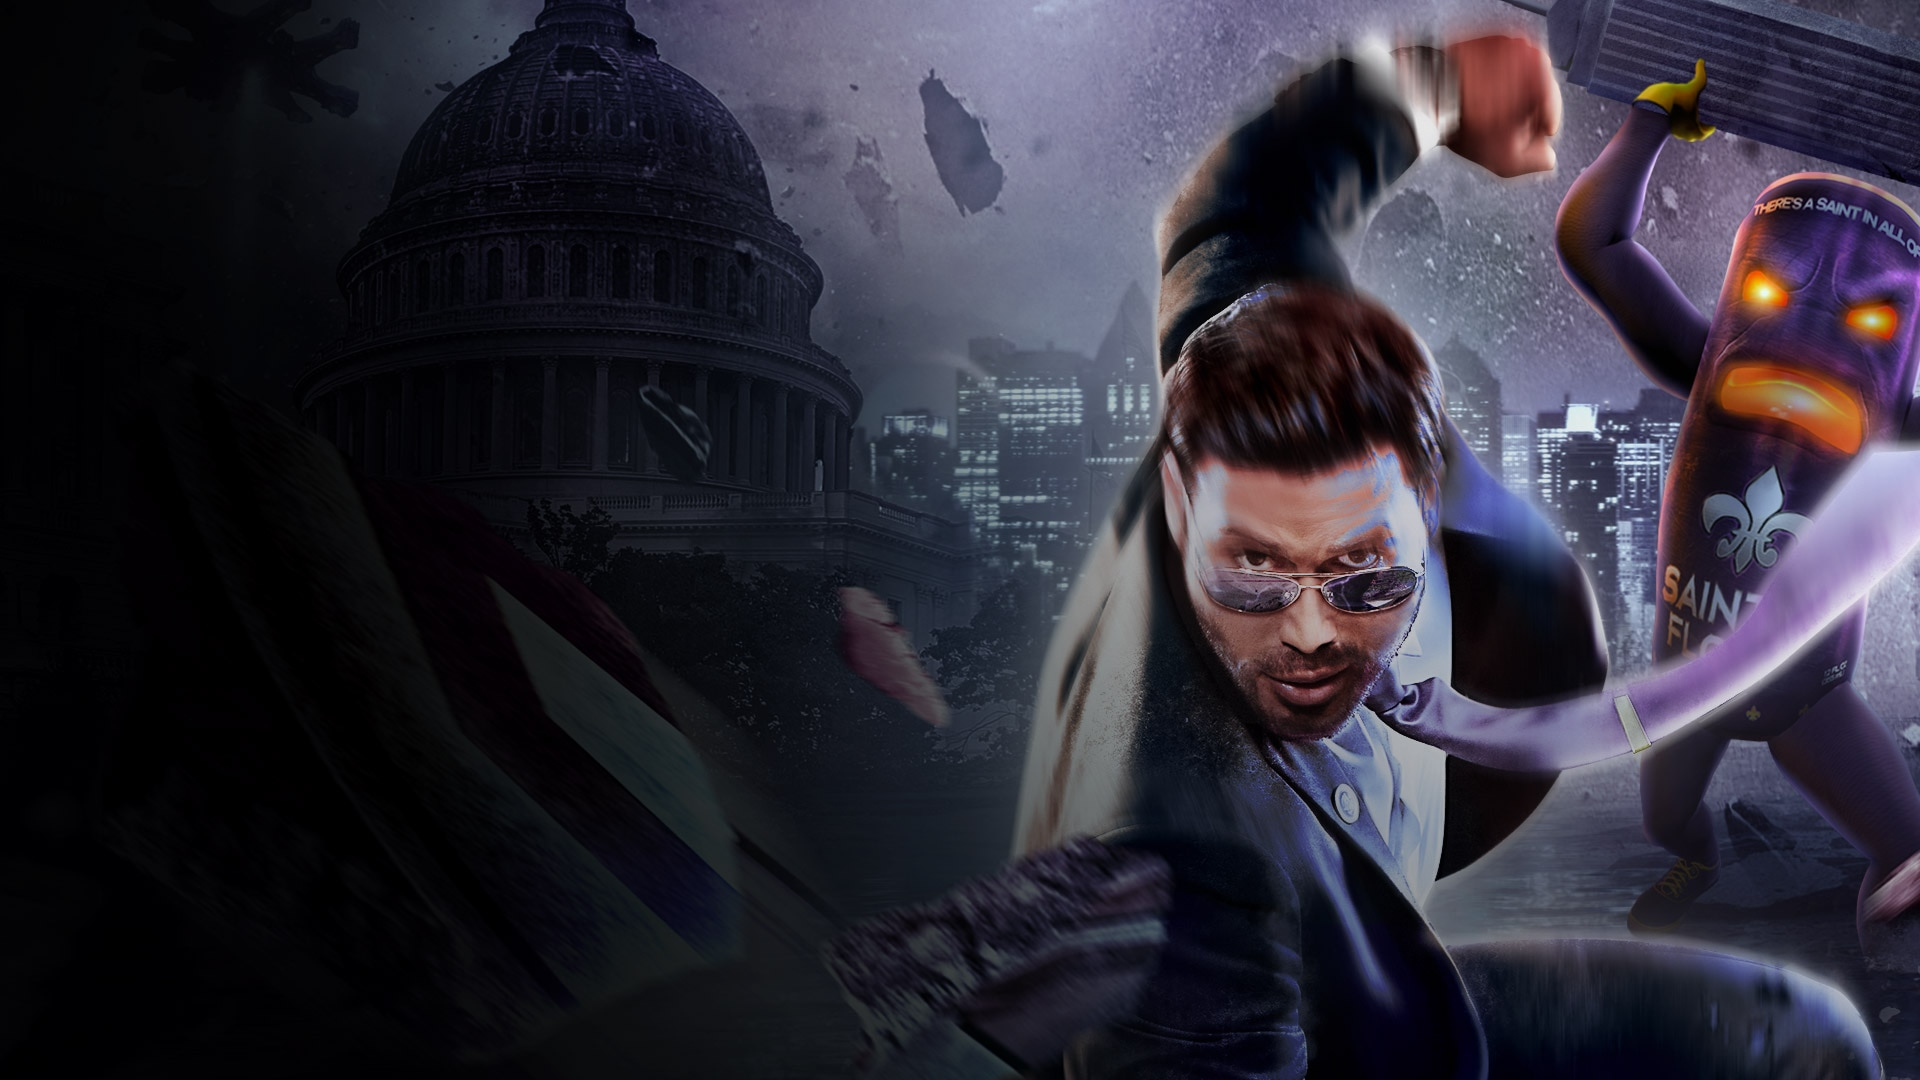 Saints Row IV: Re-Elected (英文)